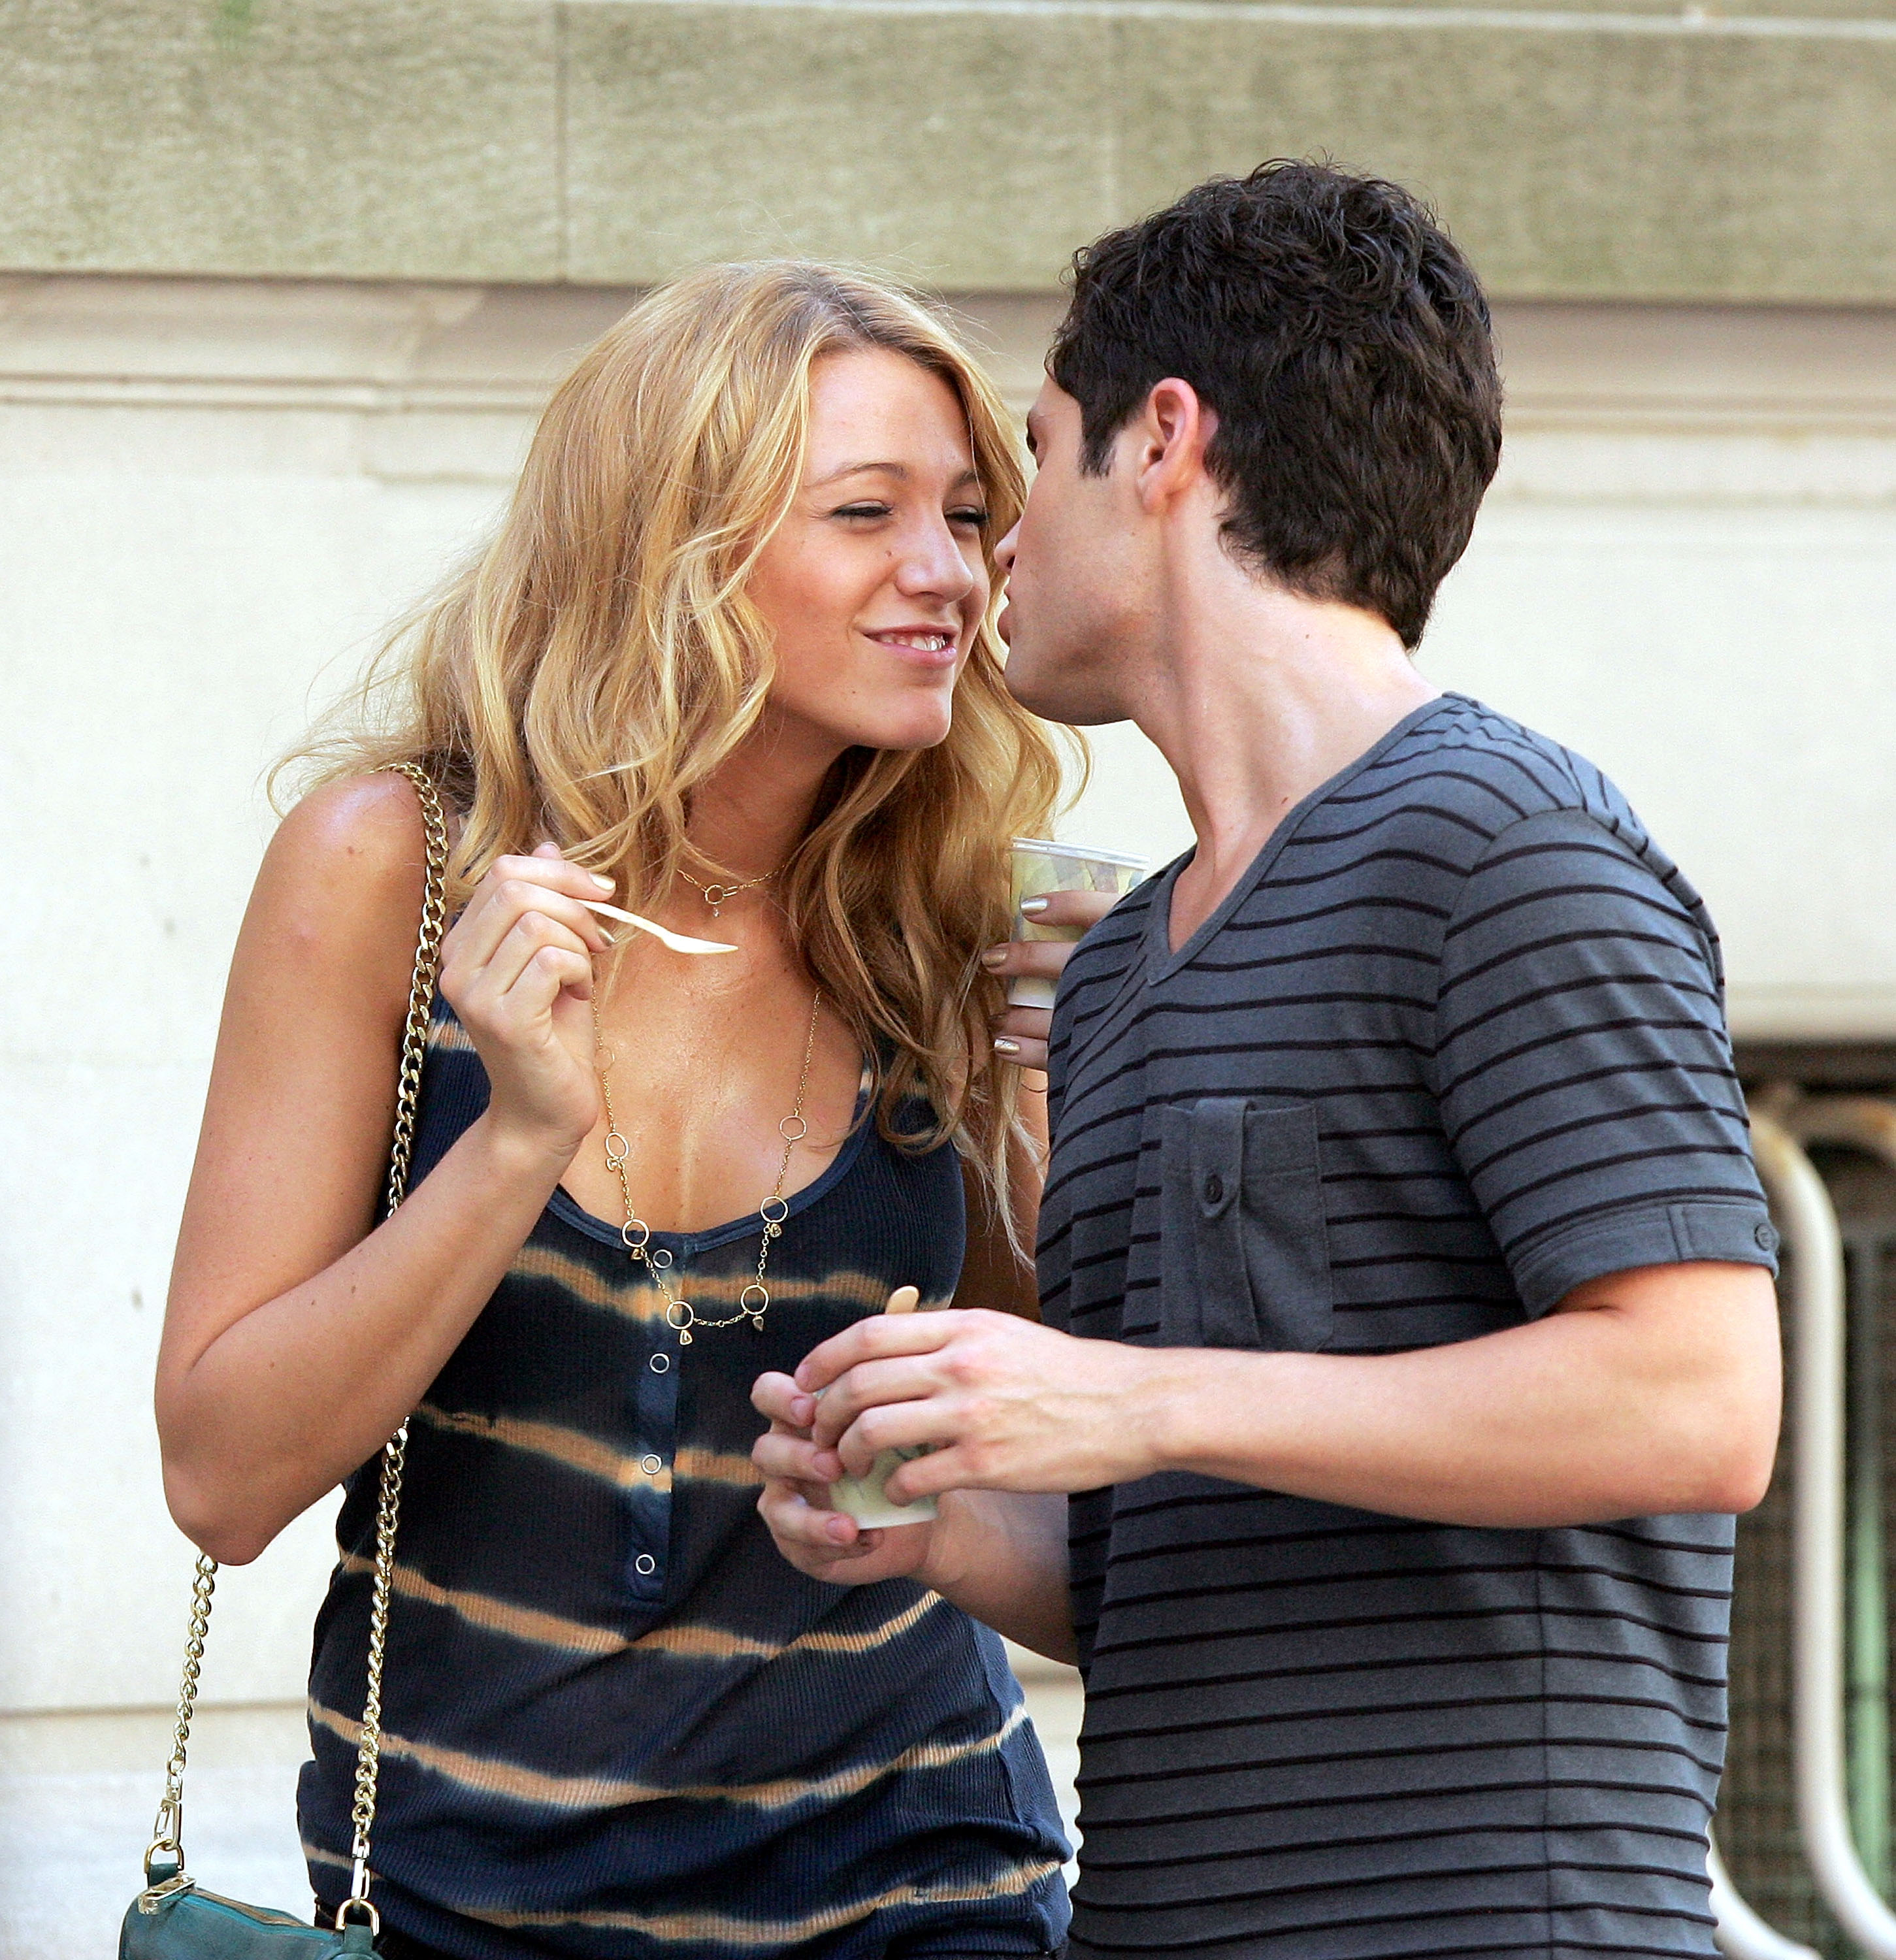 Blake Lively and Penn Badgley shared an on-camera kiss in July 2008.